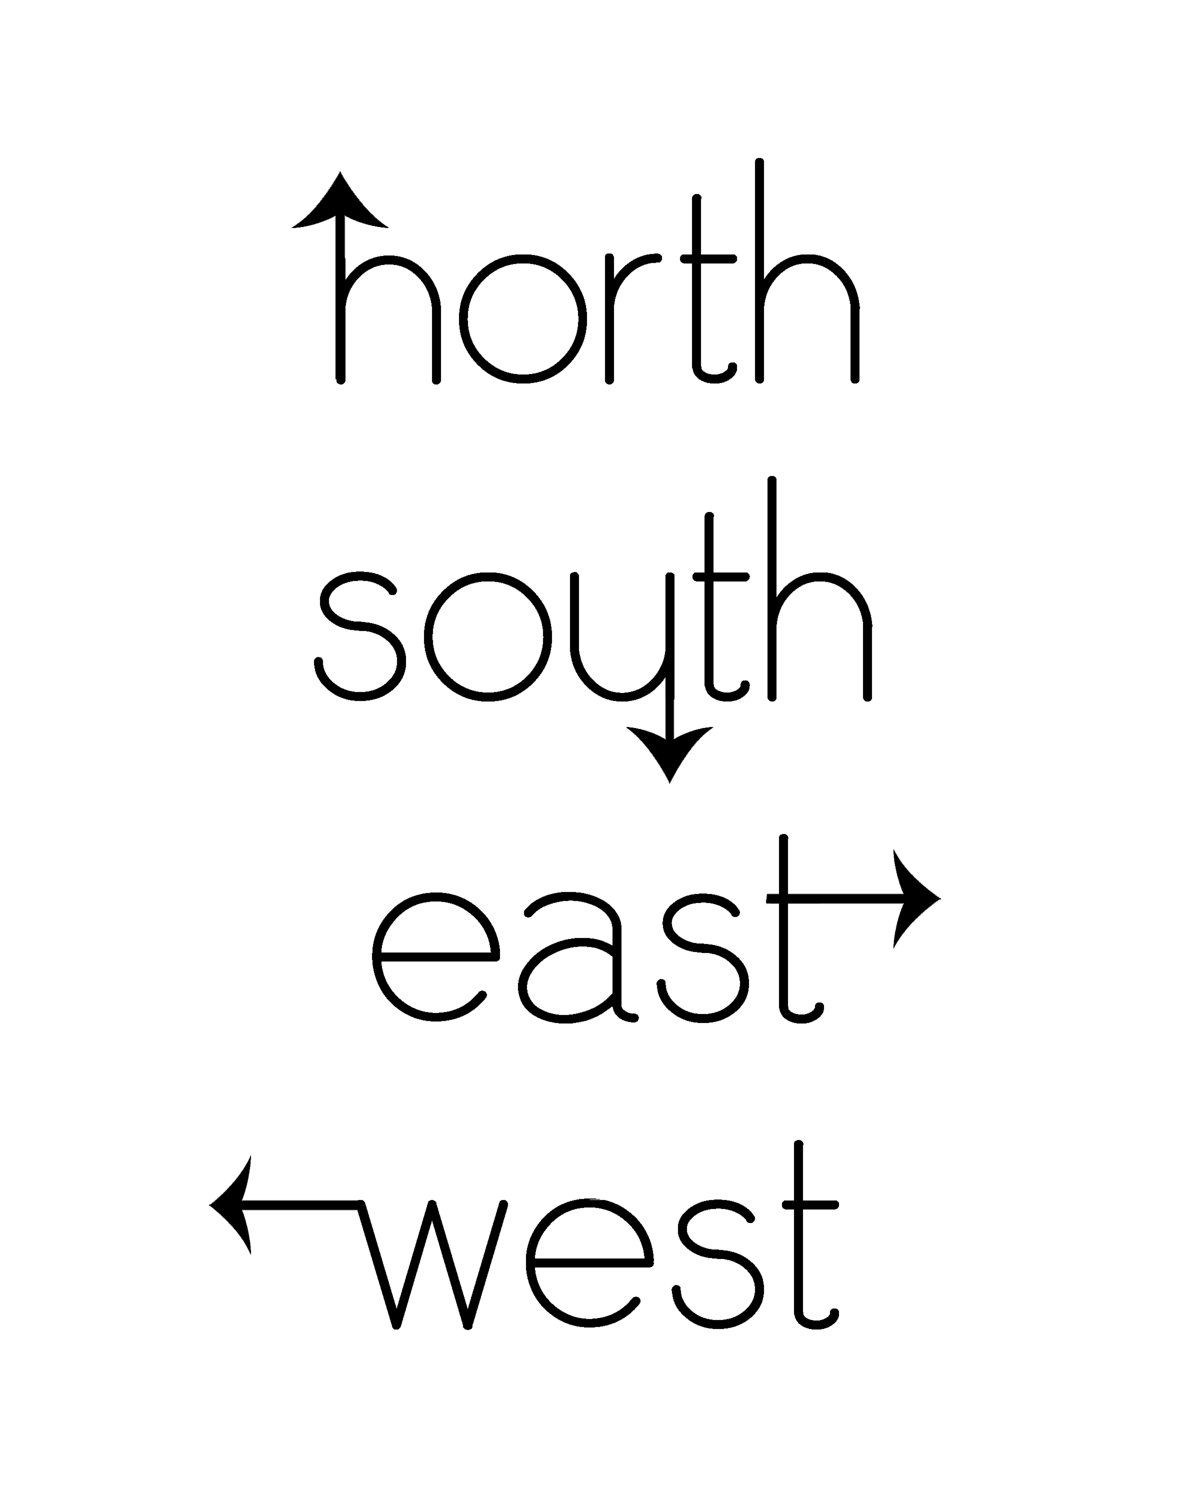 north. south. east. west. arrows. directions. map. compass ...